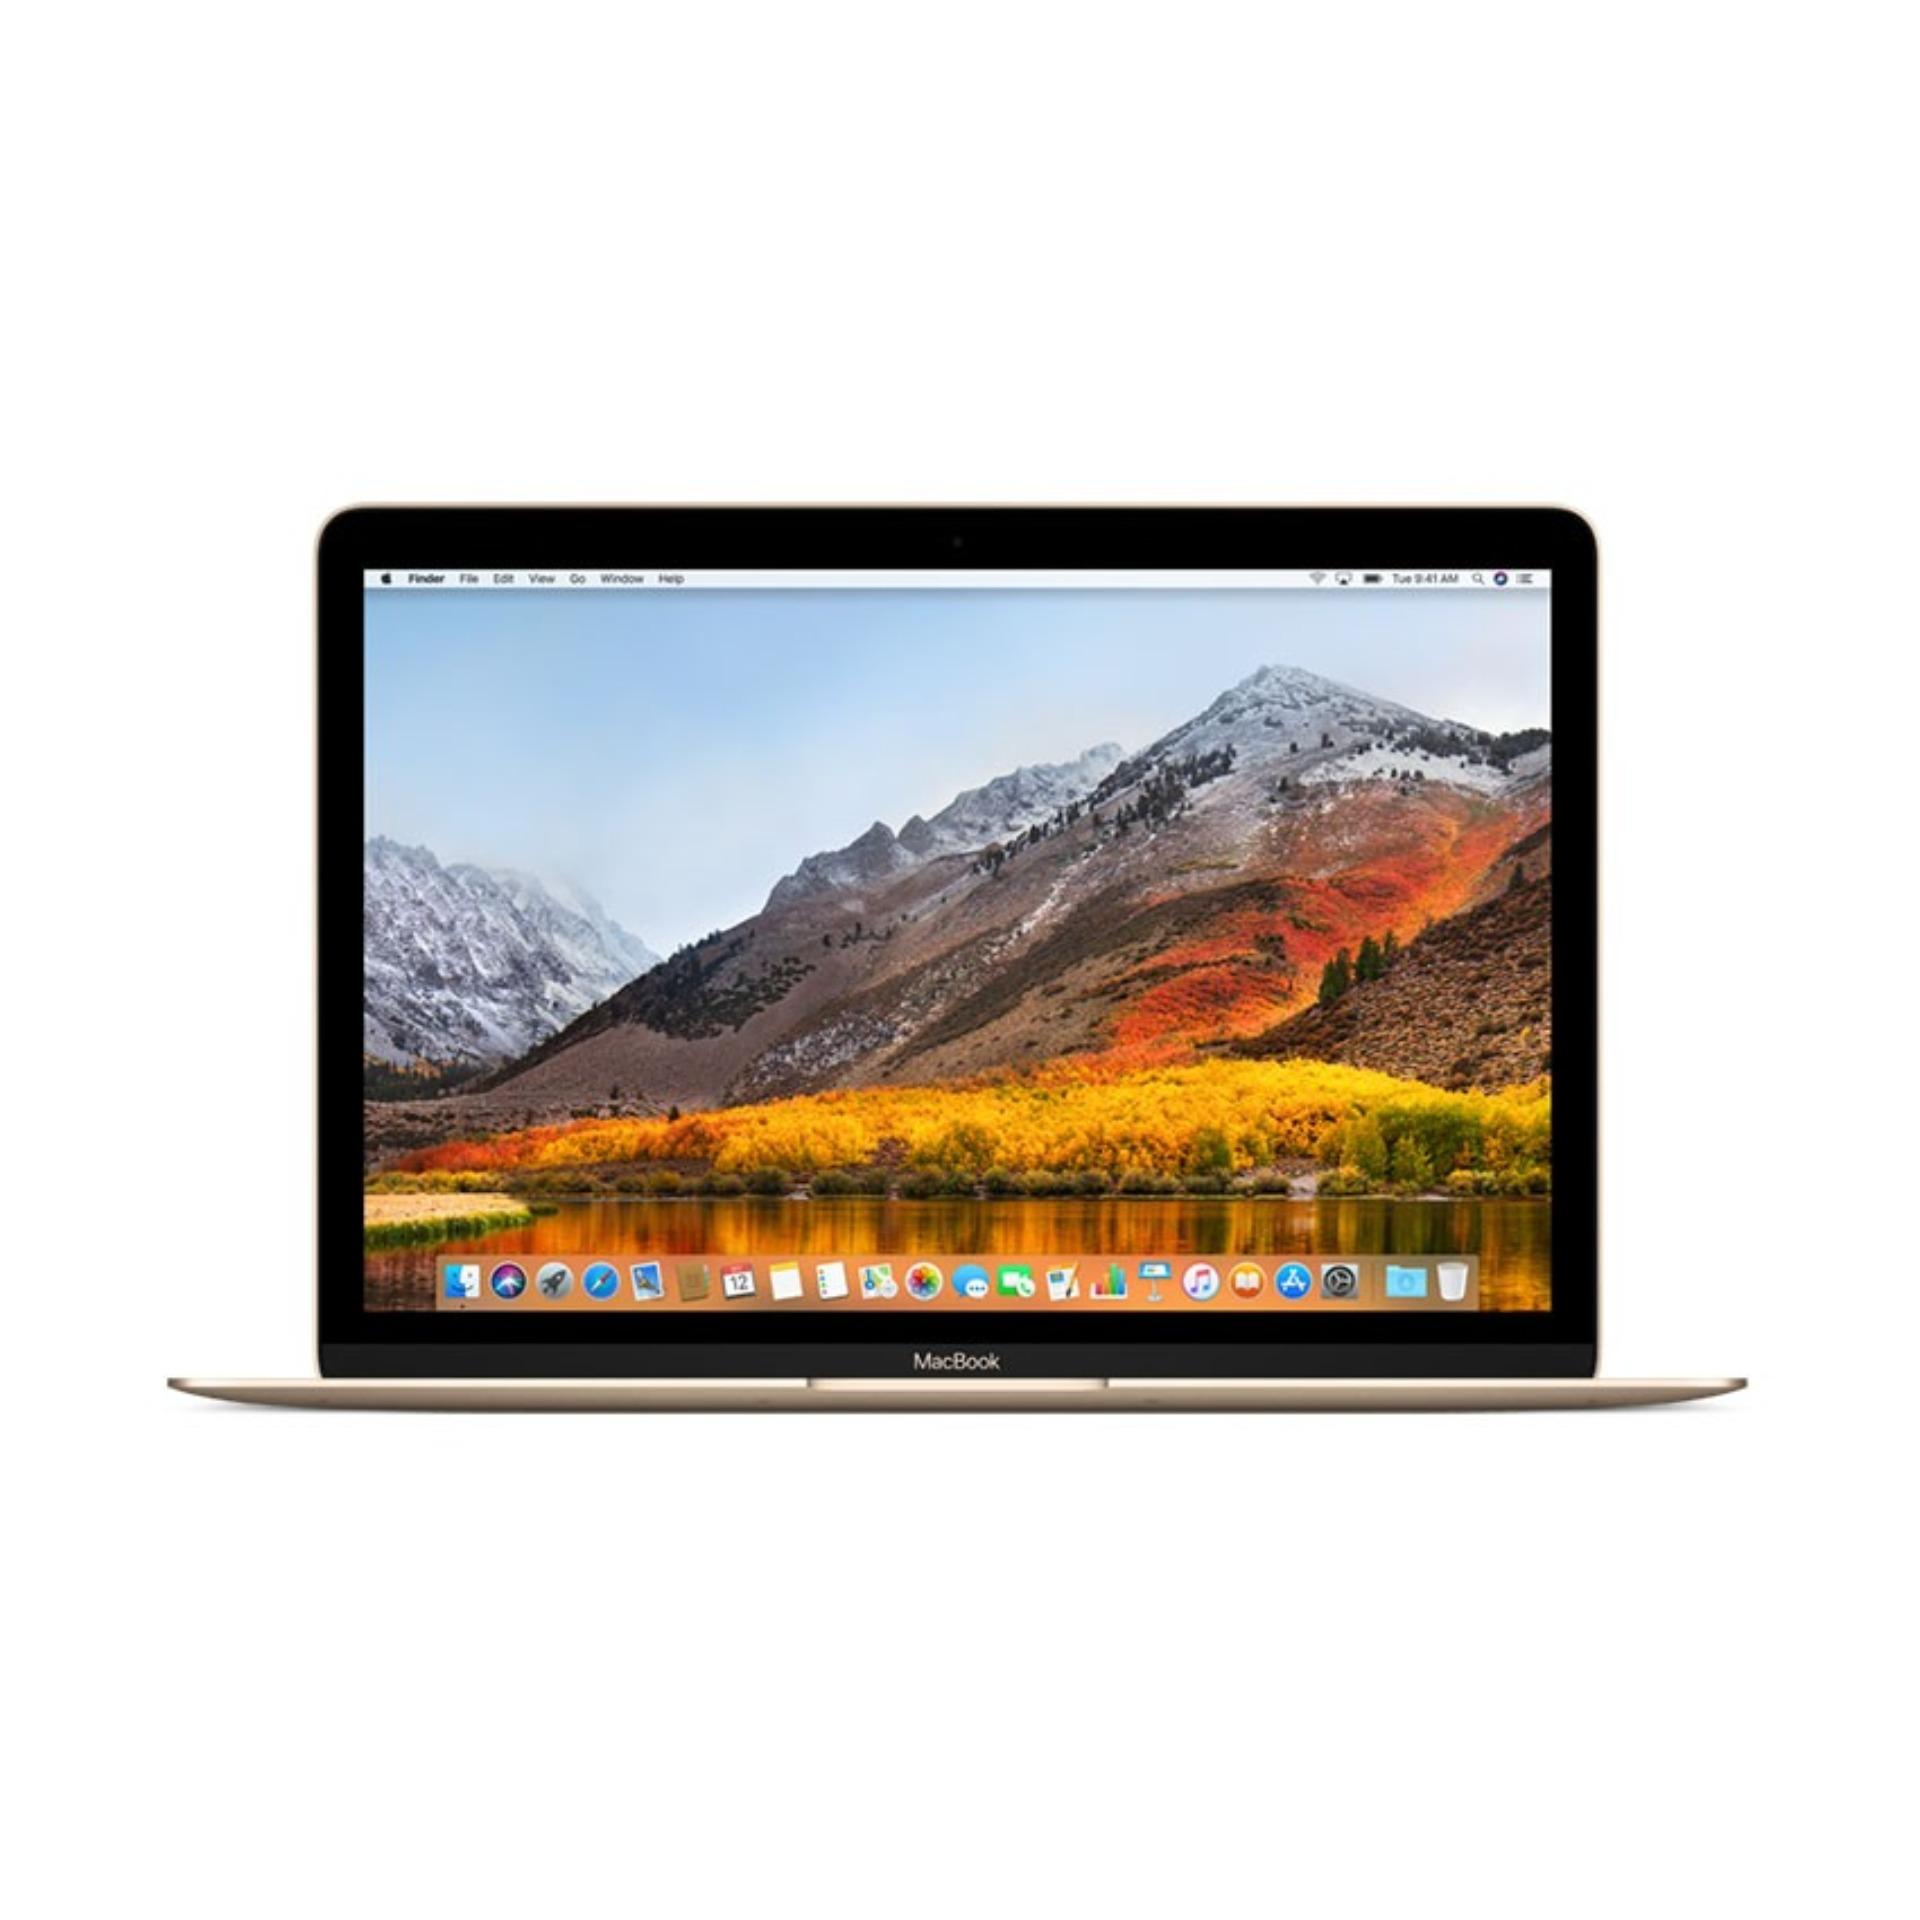 Hình ảnh Apple MacBook 12-inch 1.2GHz dual-core Intel Core m3 256GB Gold